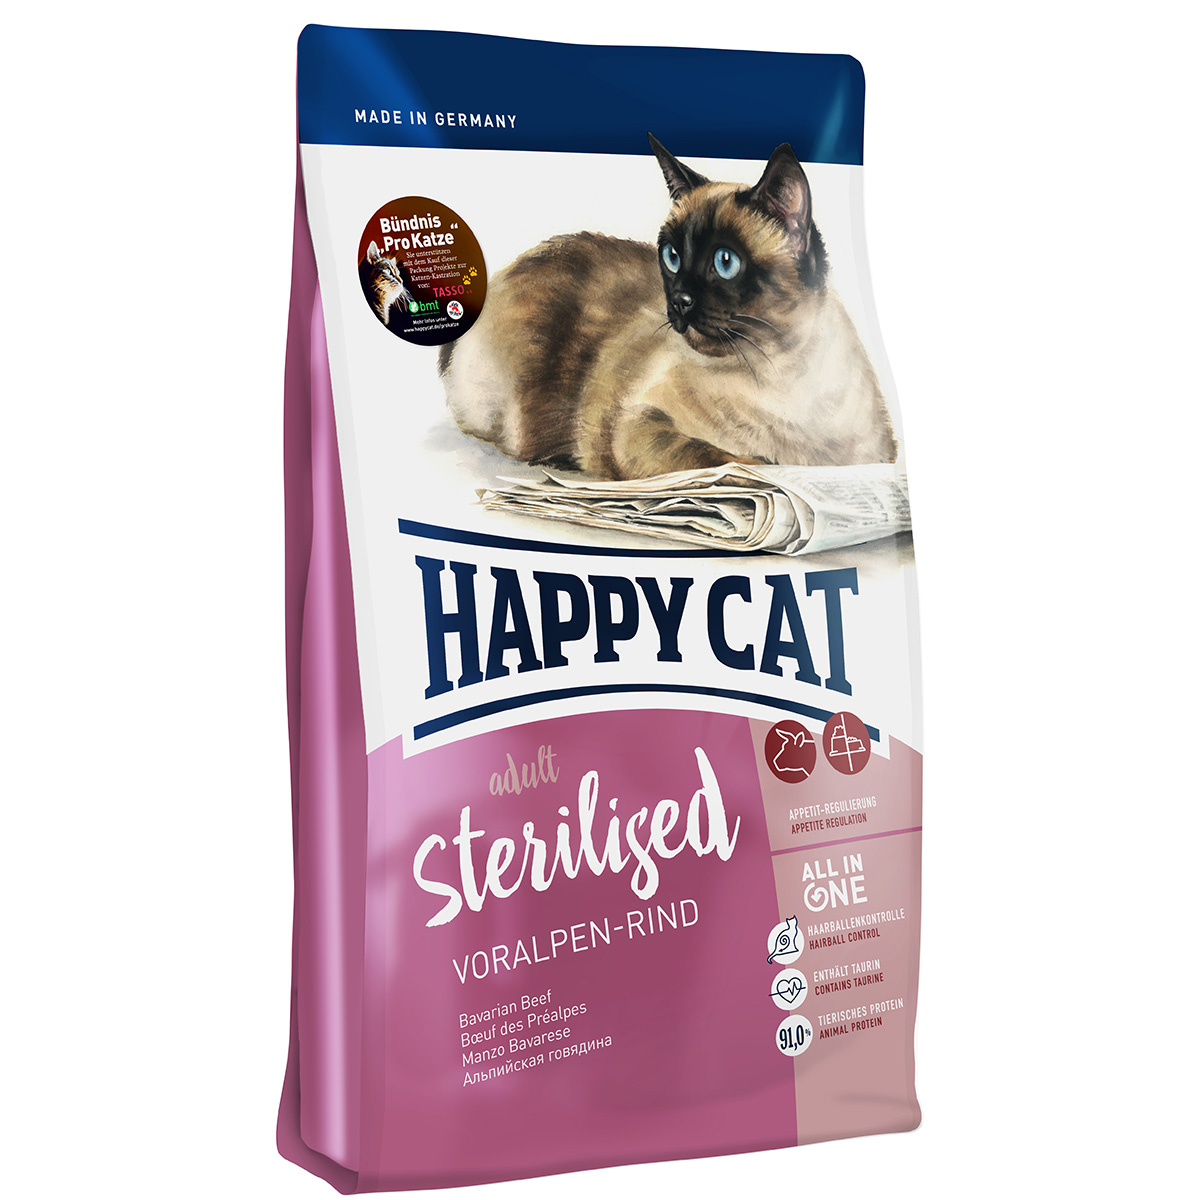 220750 1 happy cat sterilised voralpen